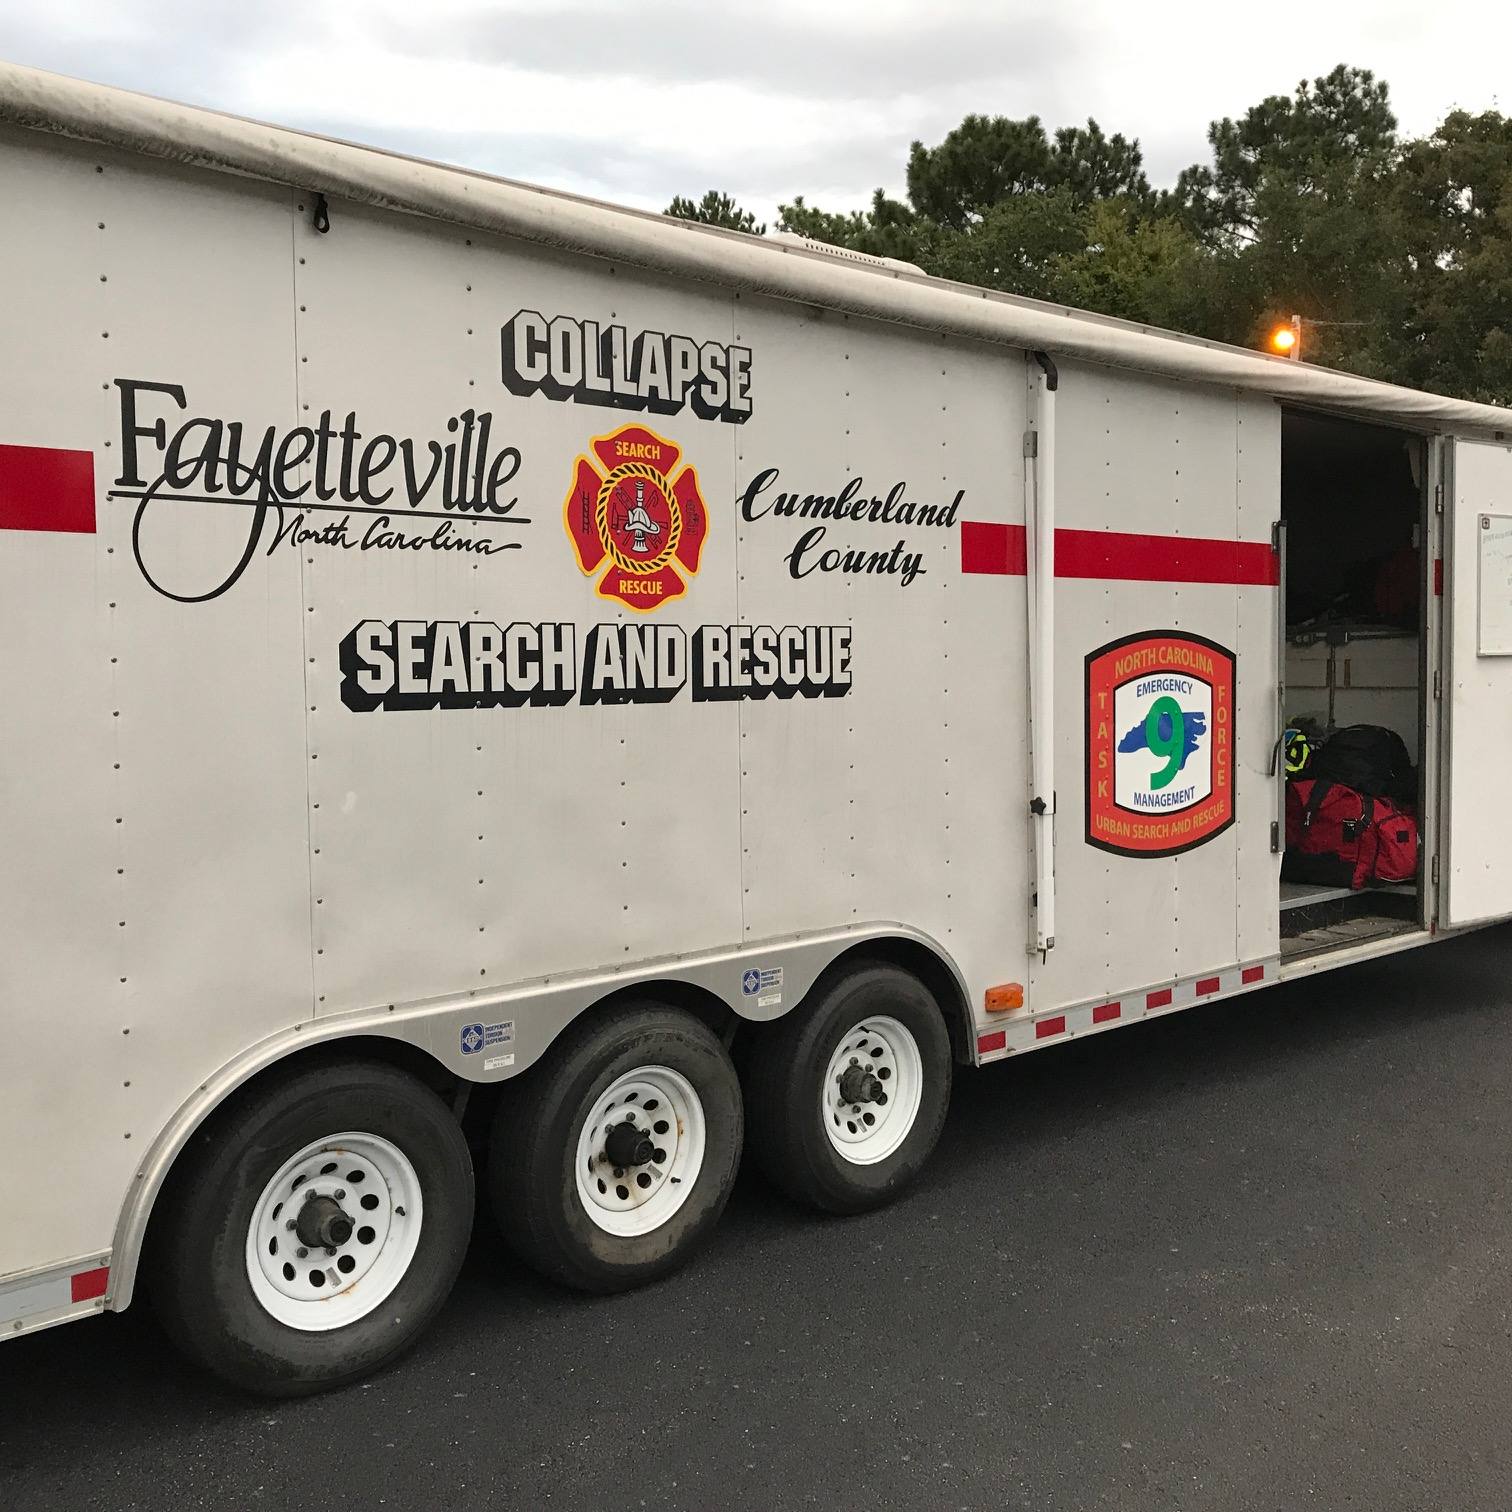 <div class='meta'><div class='origin-logo' data-origin='none'></div><span class='caption-text' data-credit='WTVD photo/Lou Guilette'>Fayetteville swift-water team headed to help Harvey victims</span></div>